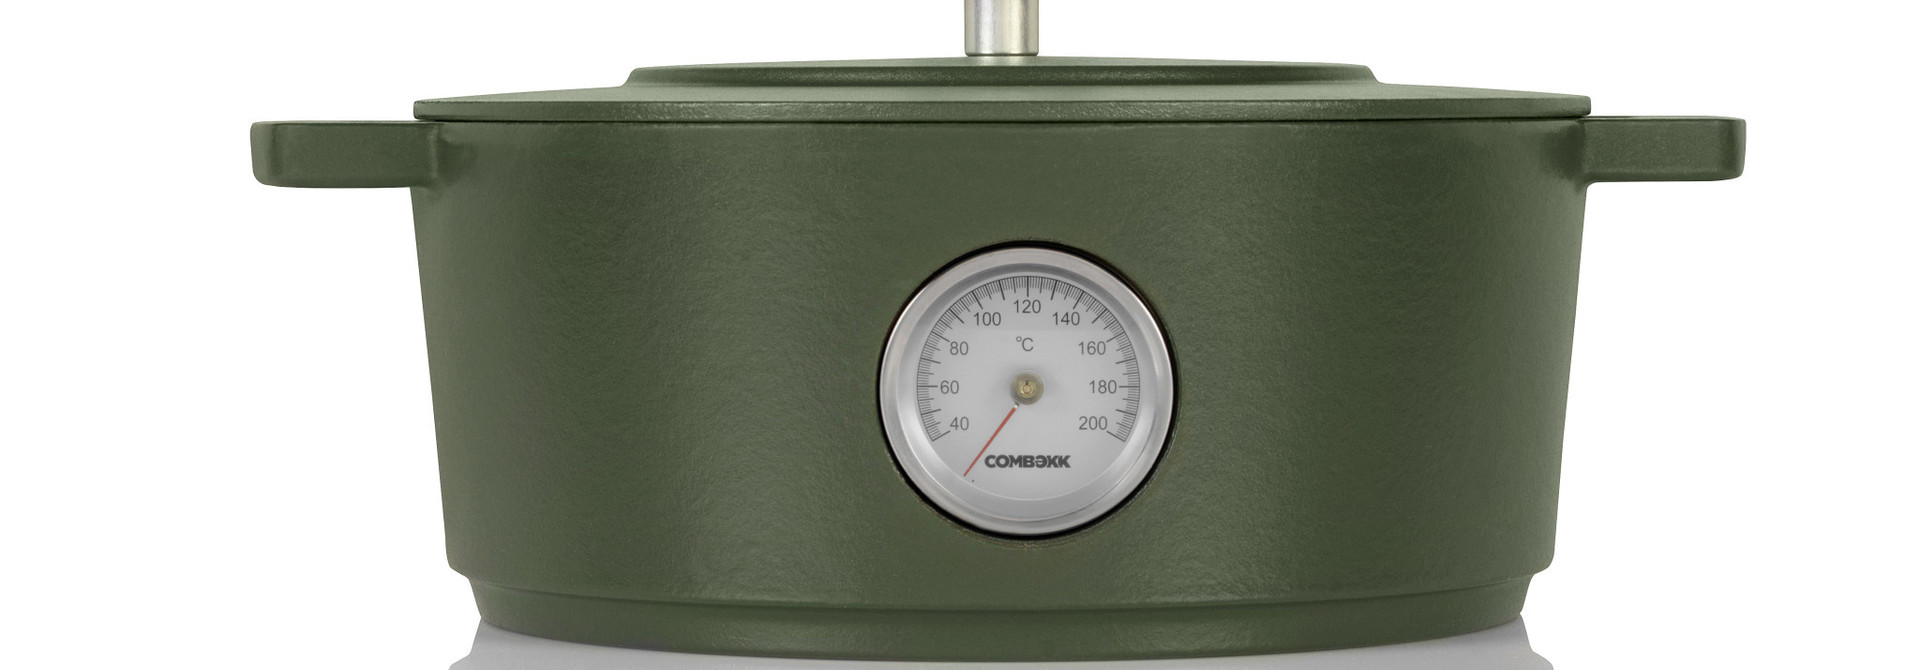 Dutch Oven w/ Thermometer